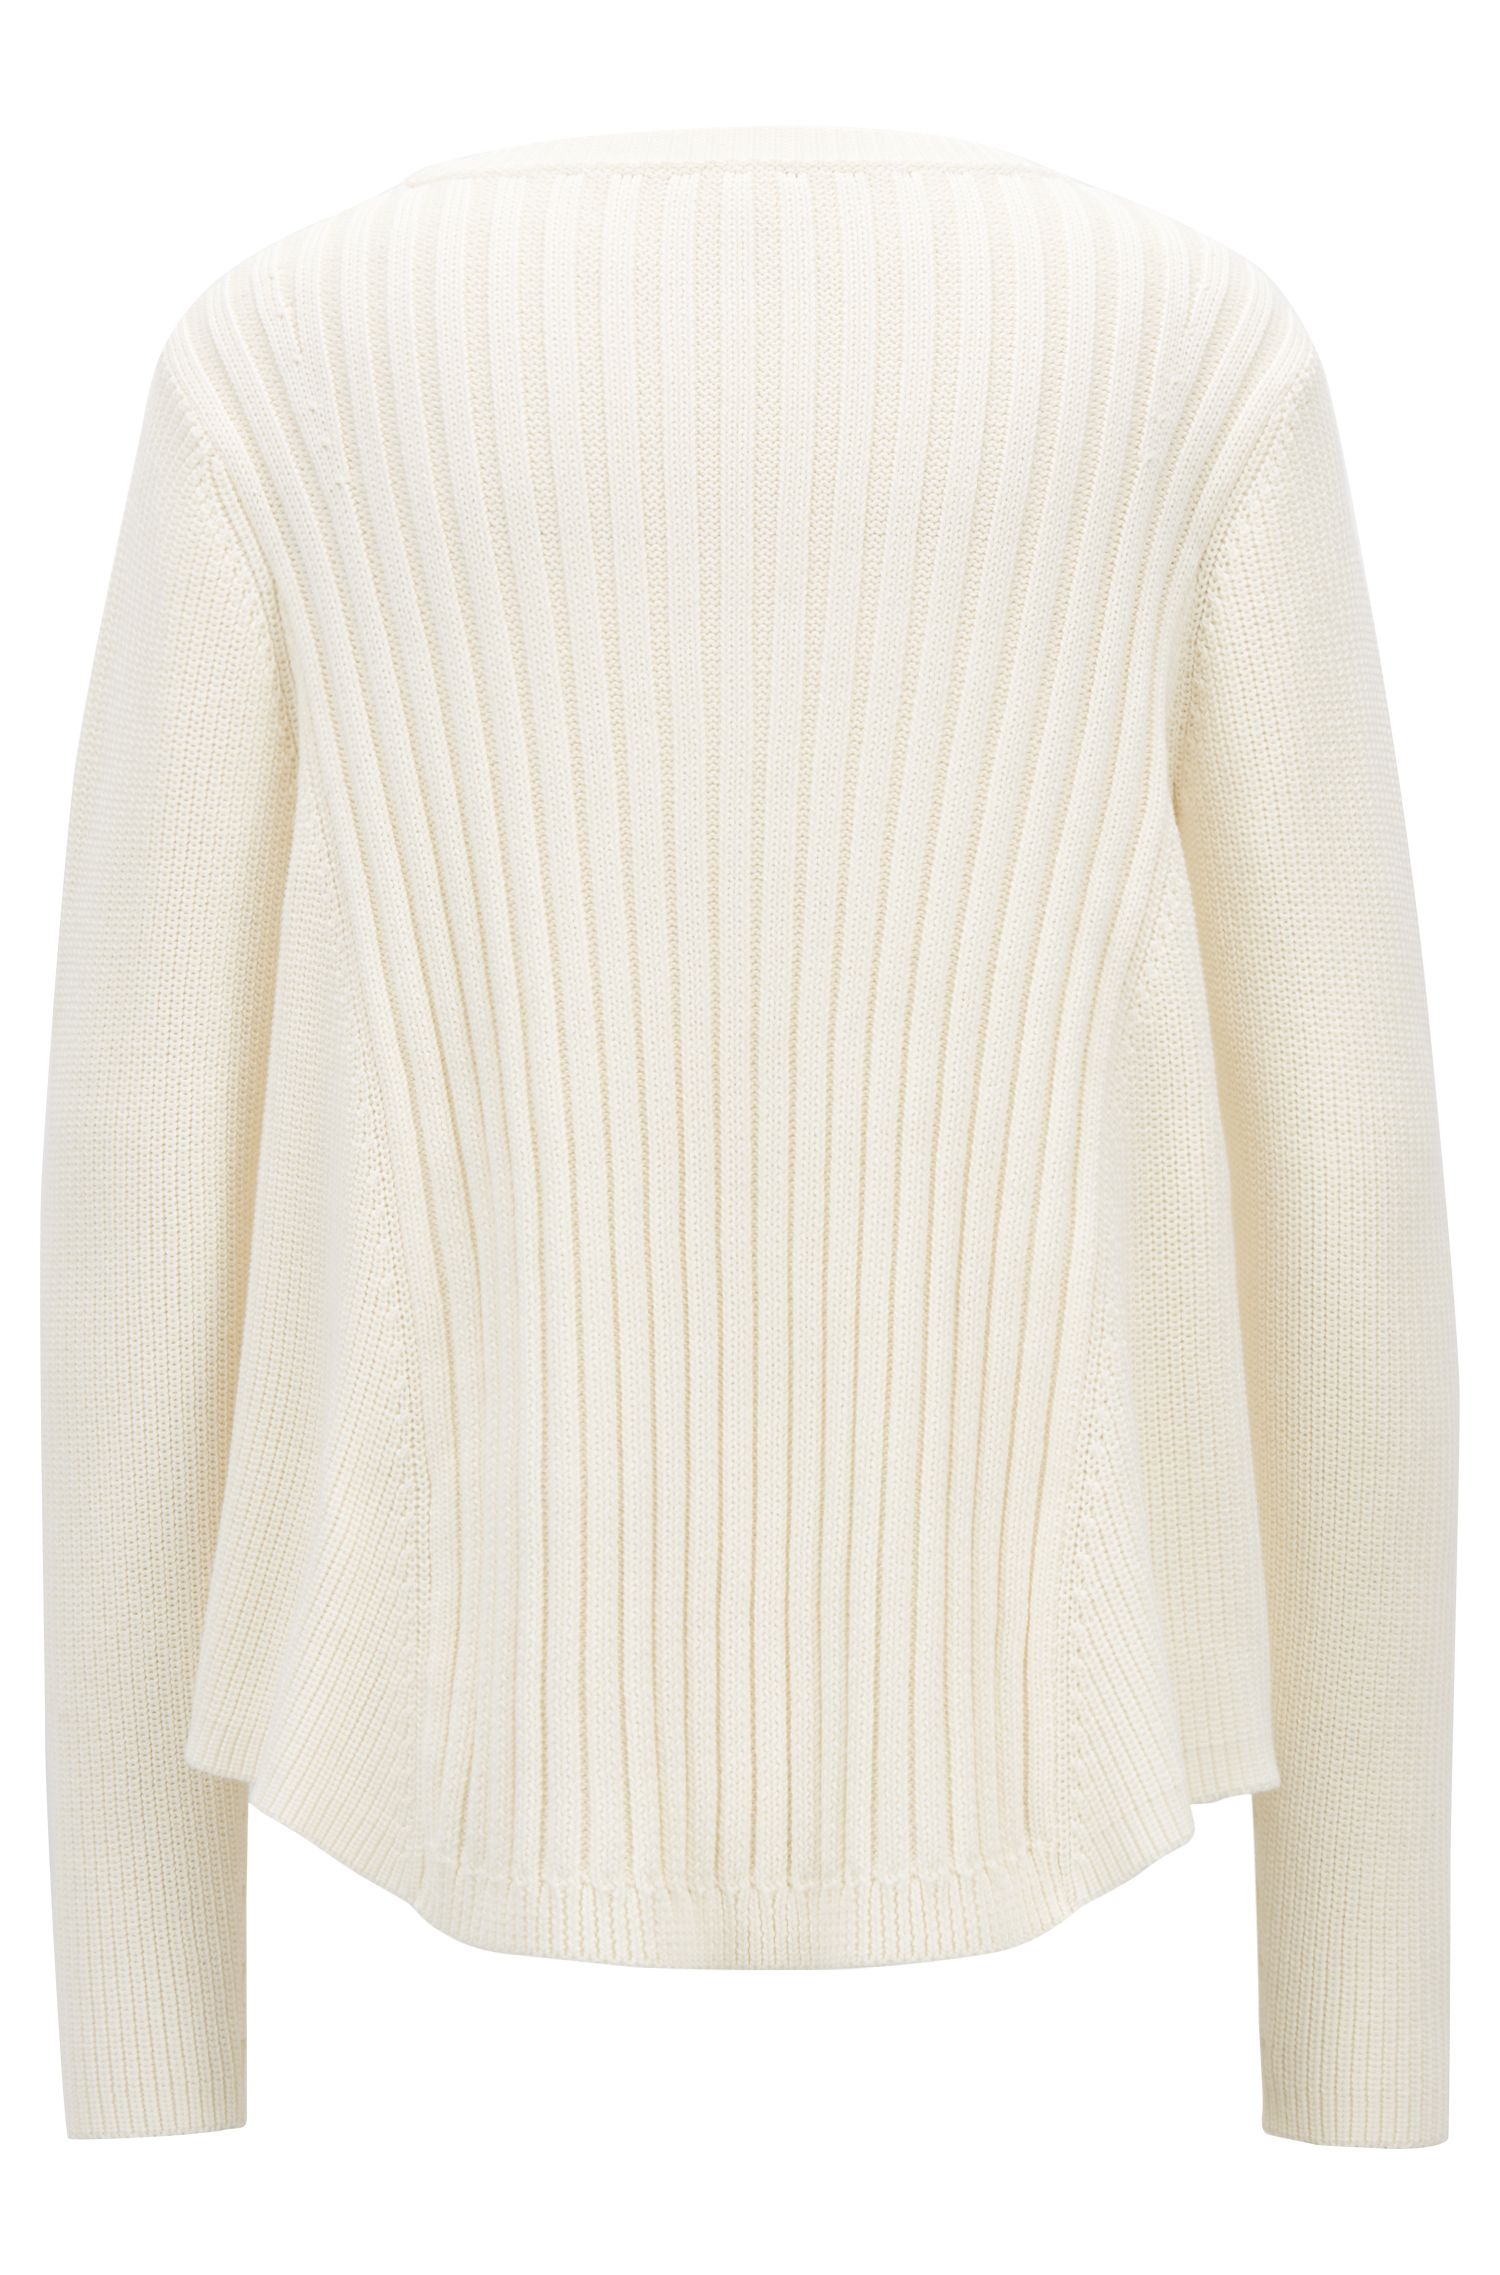 Flared crew-neck sweater in cotton with mixed structures, Natural